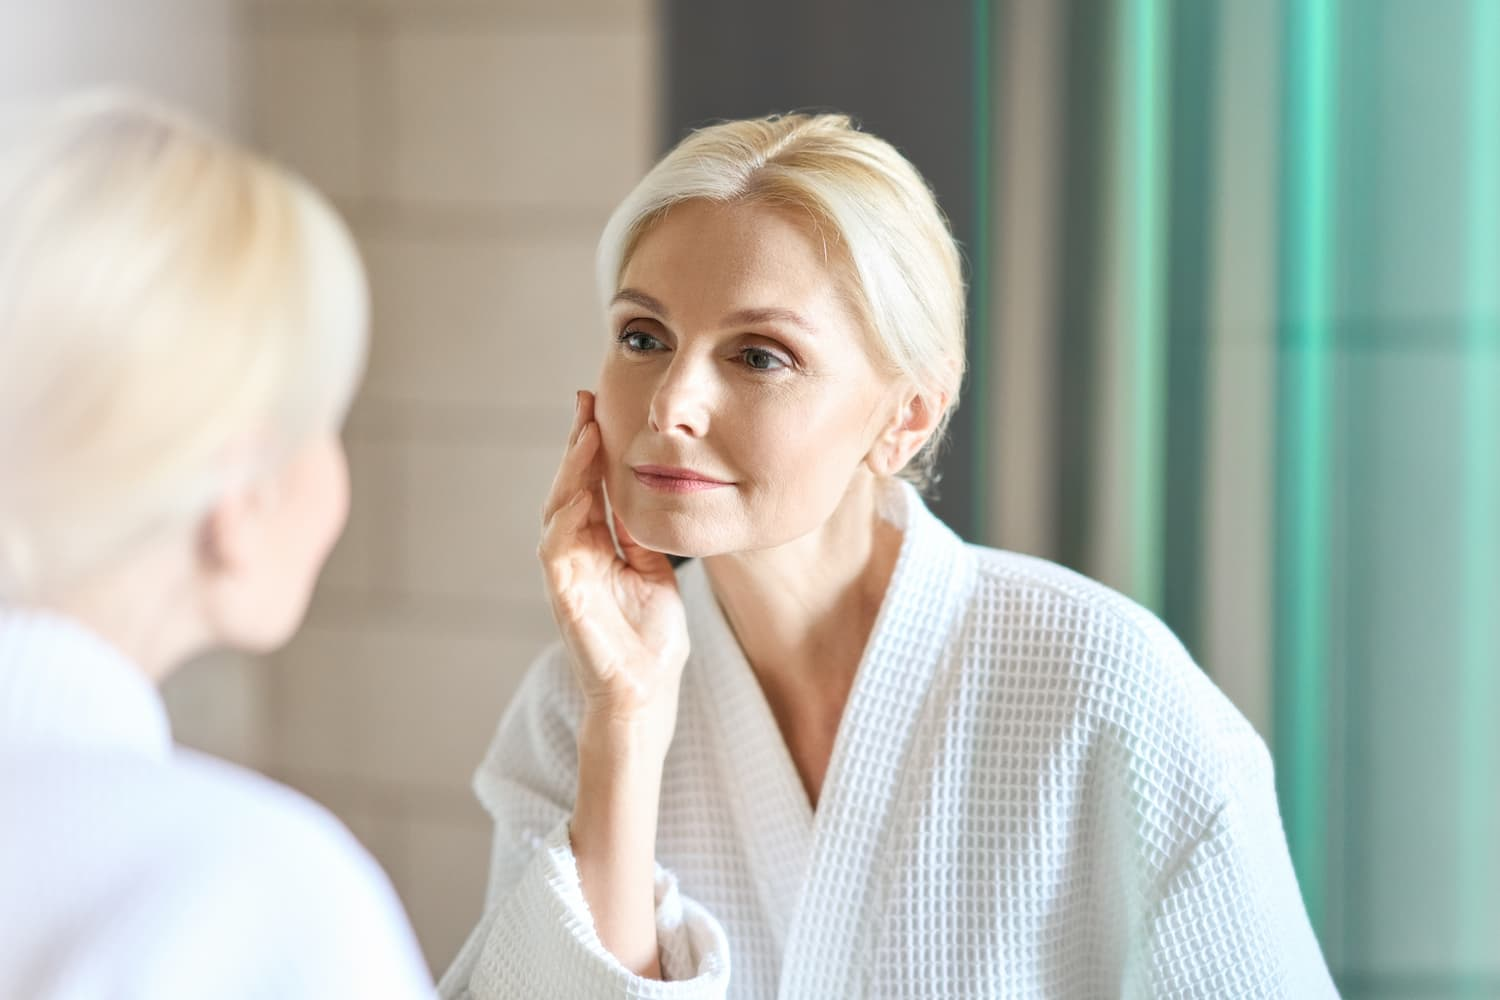 Older woman examining her face in the mirror